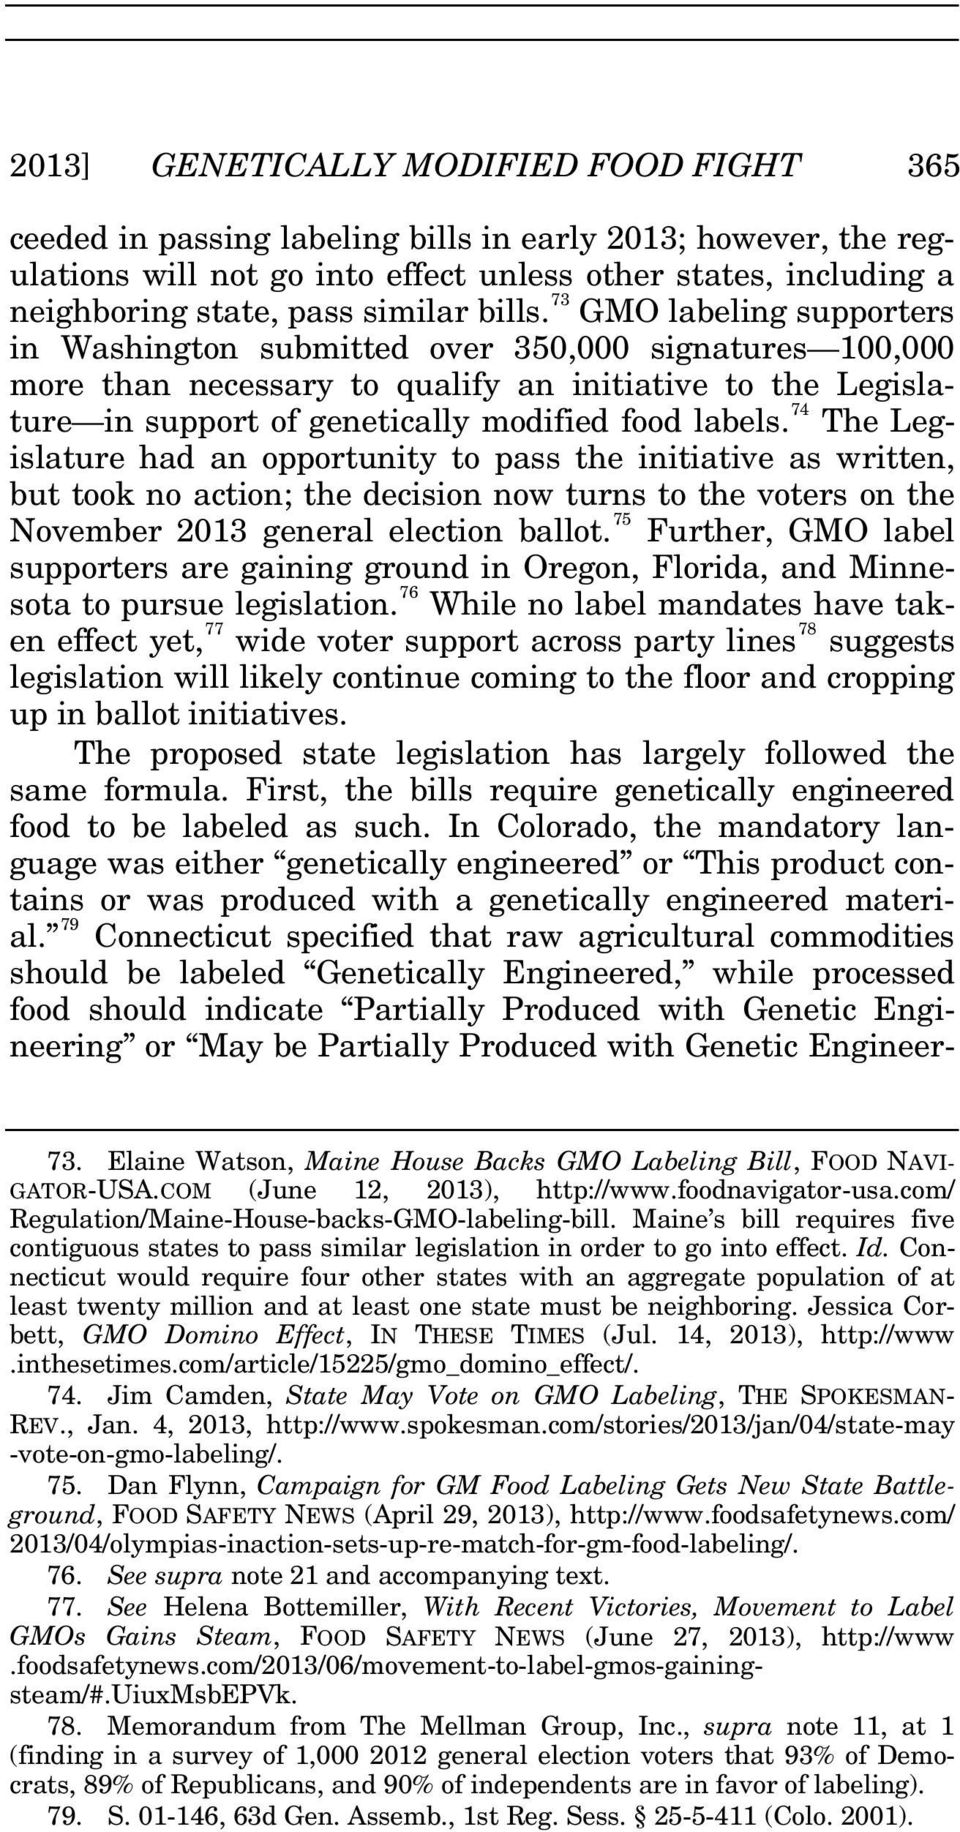 73 GMO labeling supporters in Washington submitted over 350,000 signatures 100,000 more than necessary to qualify an initiative to the Legislature in support of genetically modified food labels.